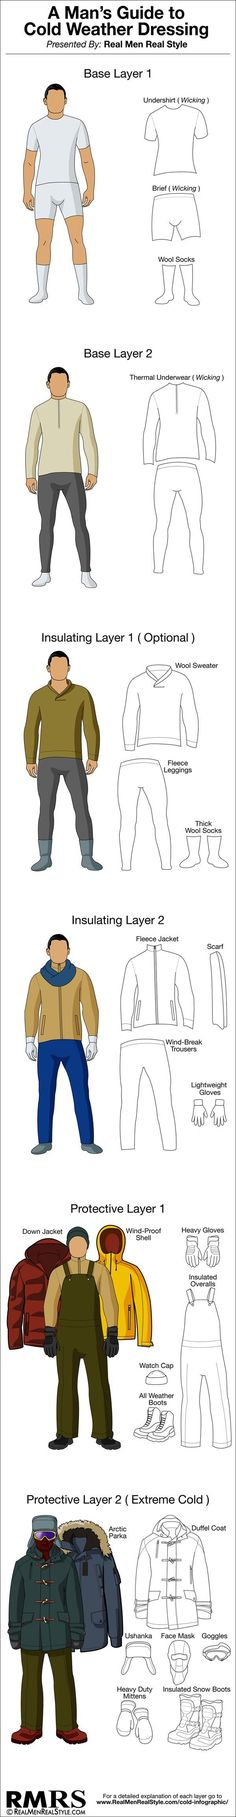 How To Dress Warm In Cold Weather Infographic